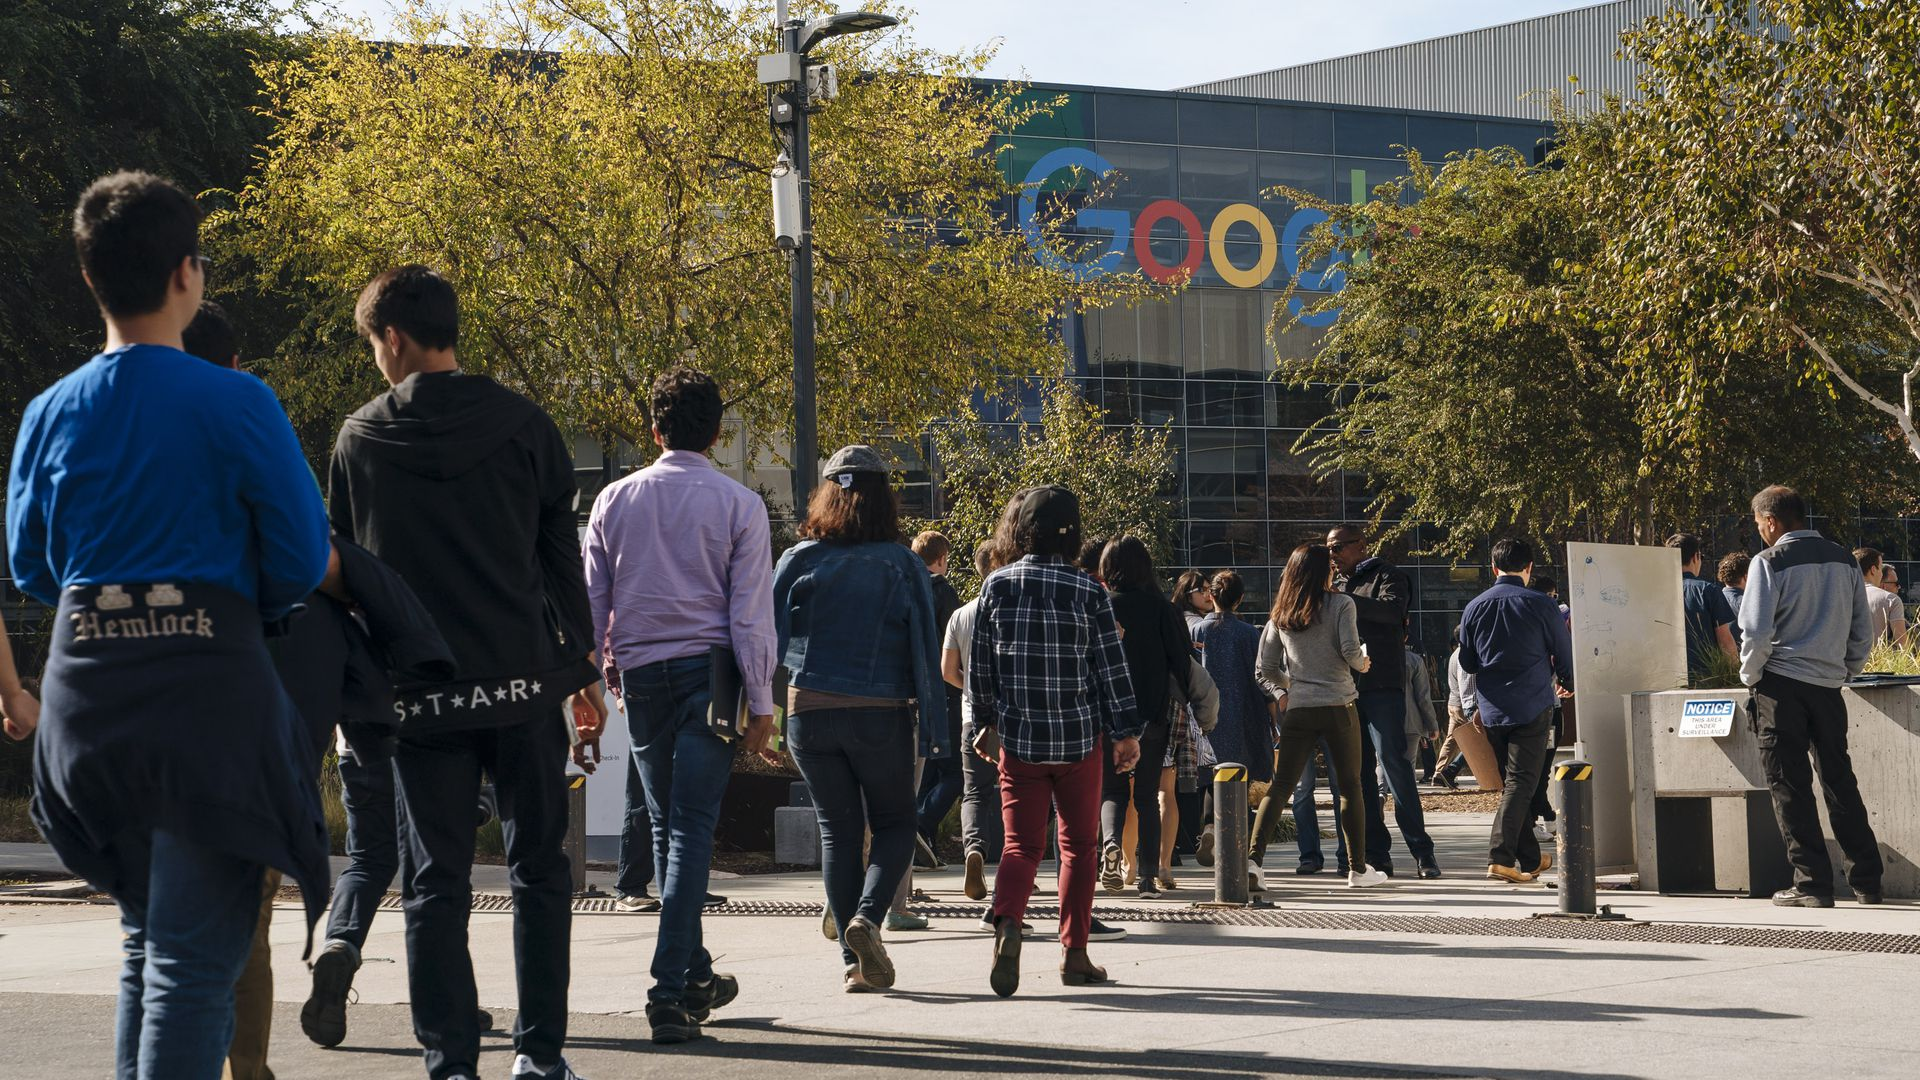 Google employees walkout in diagonal line with Google logo in background.